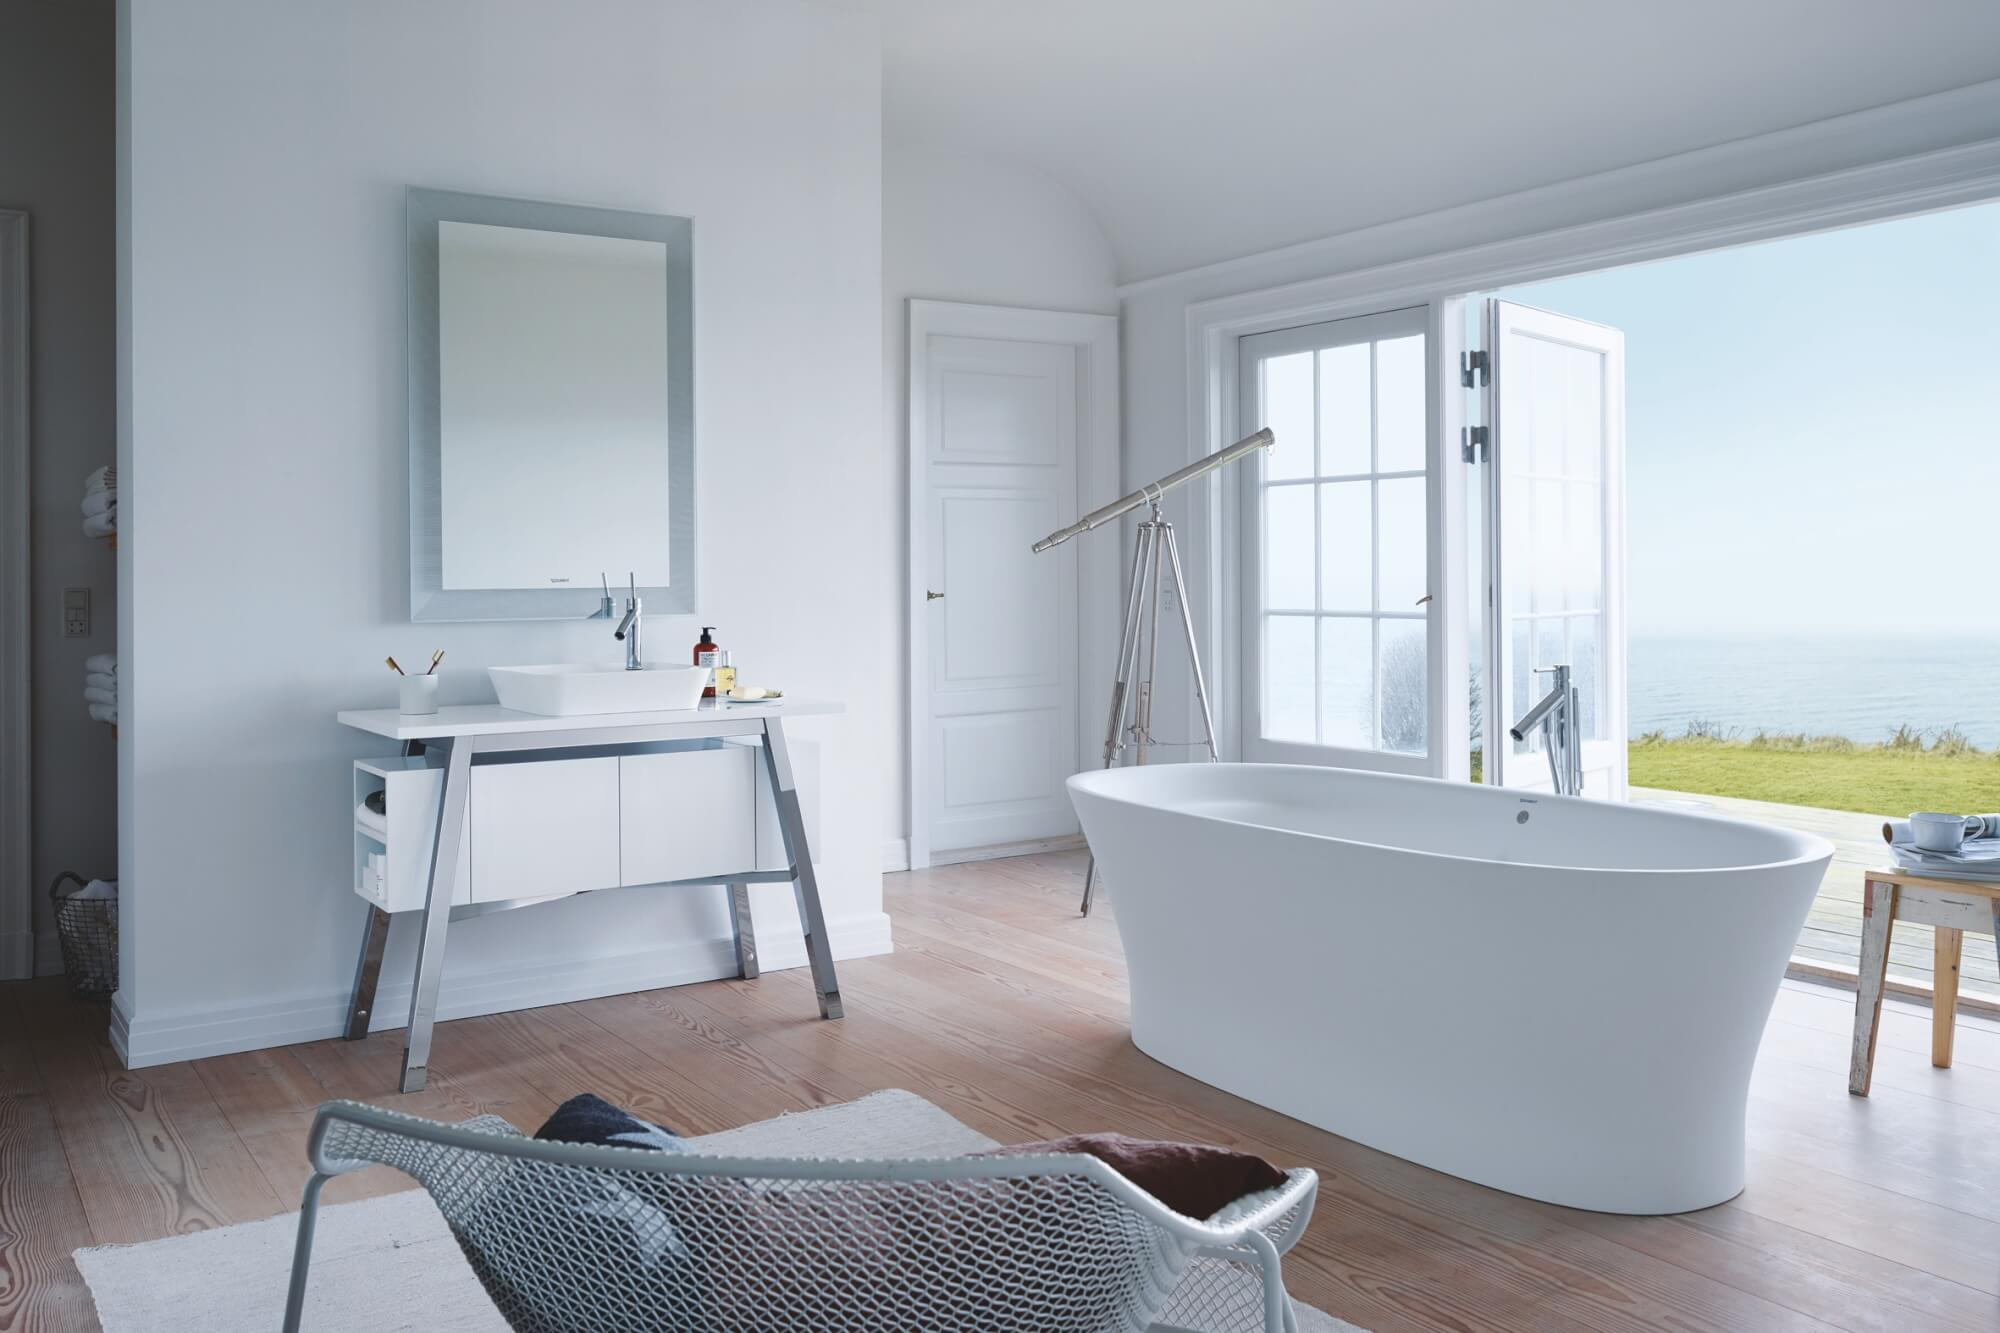 CAPE COD by Starck (DURAVIT)